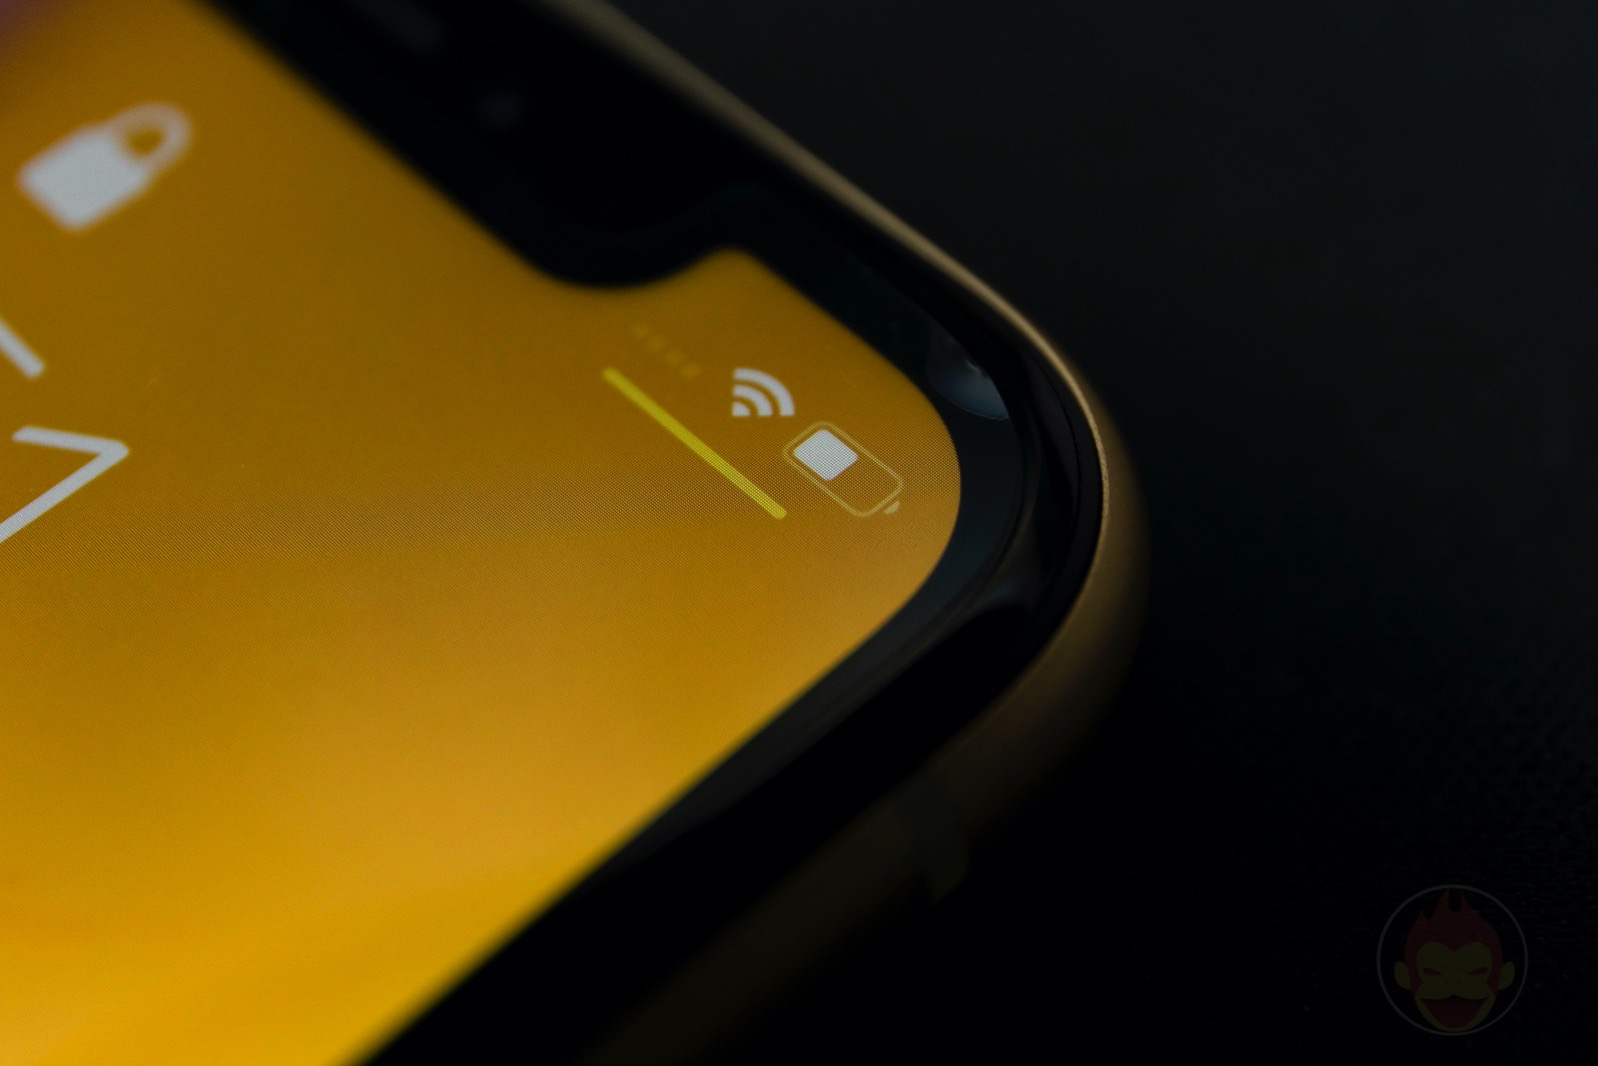 iPhone-XR-First-Impression-Review-13.jpg